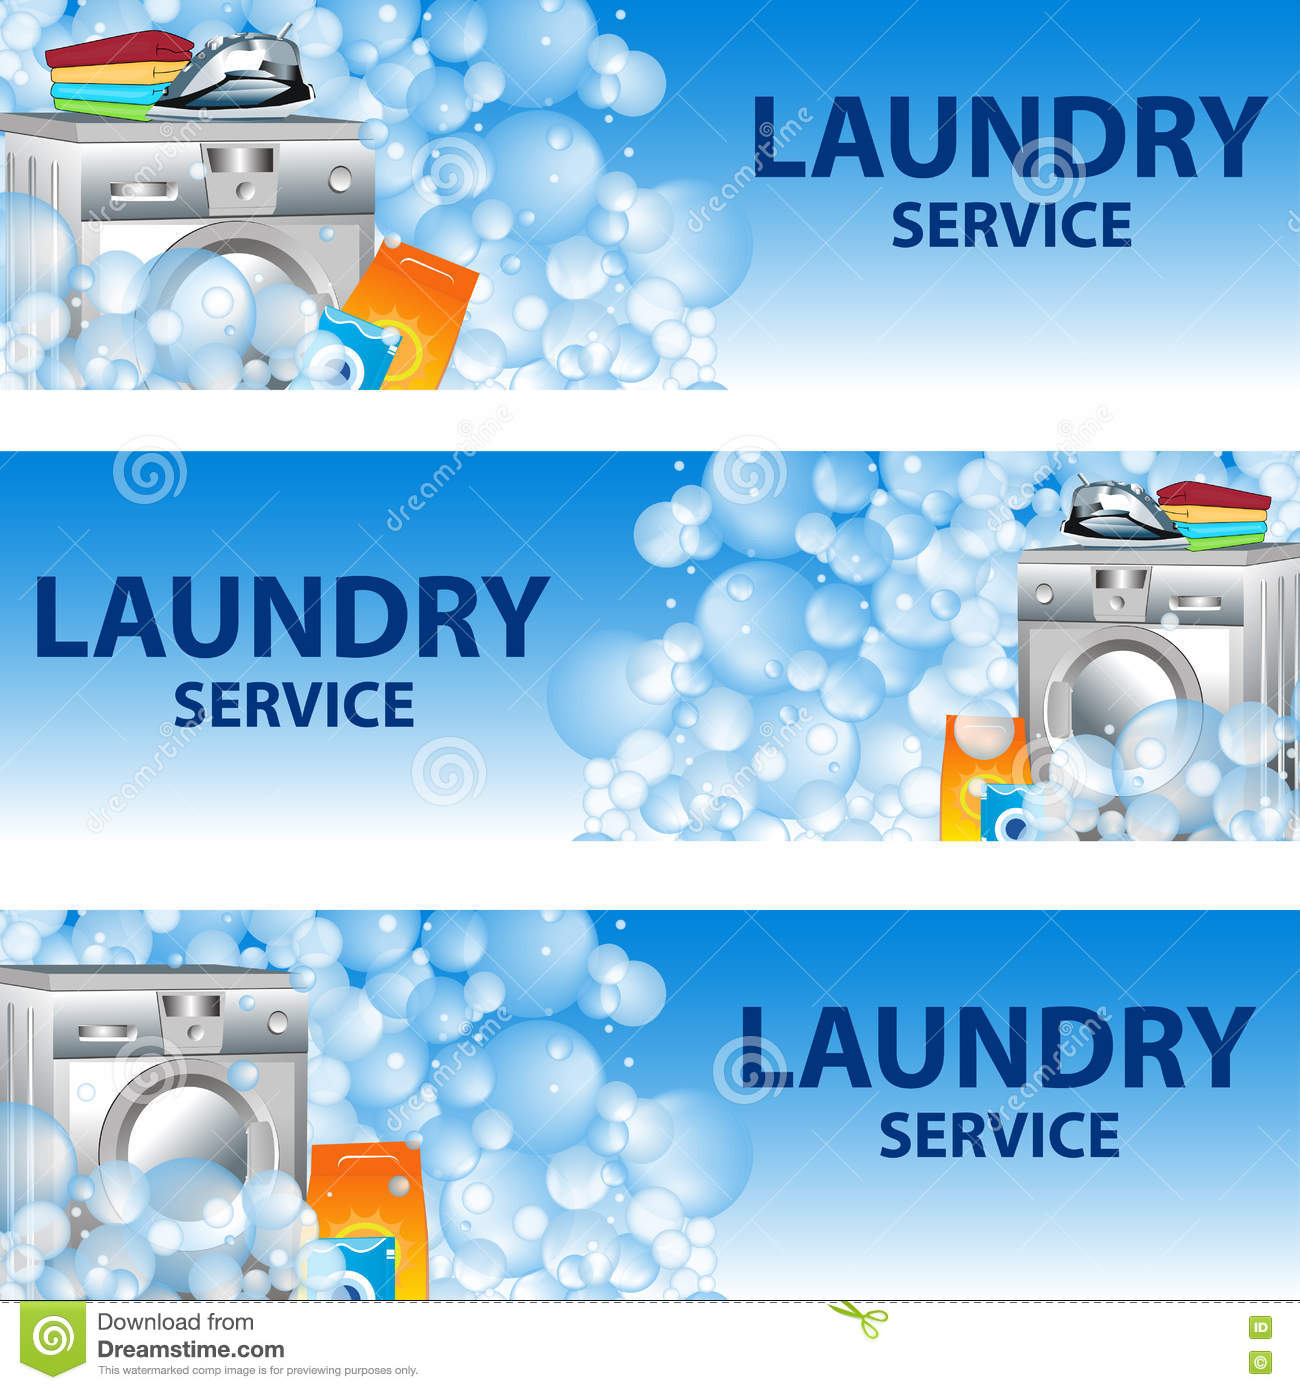 laundry services flyer template stock photography image  laundry service flyer middot set banners laundry service poster template for house cleaning royalty stock image